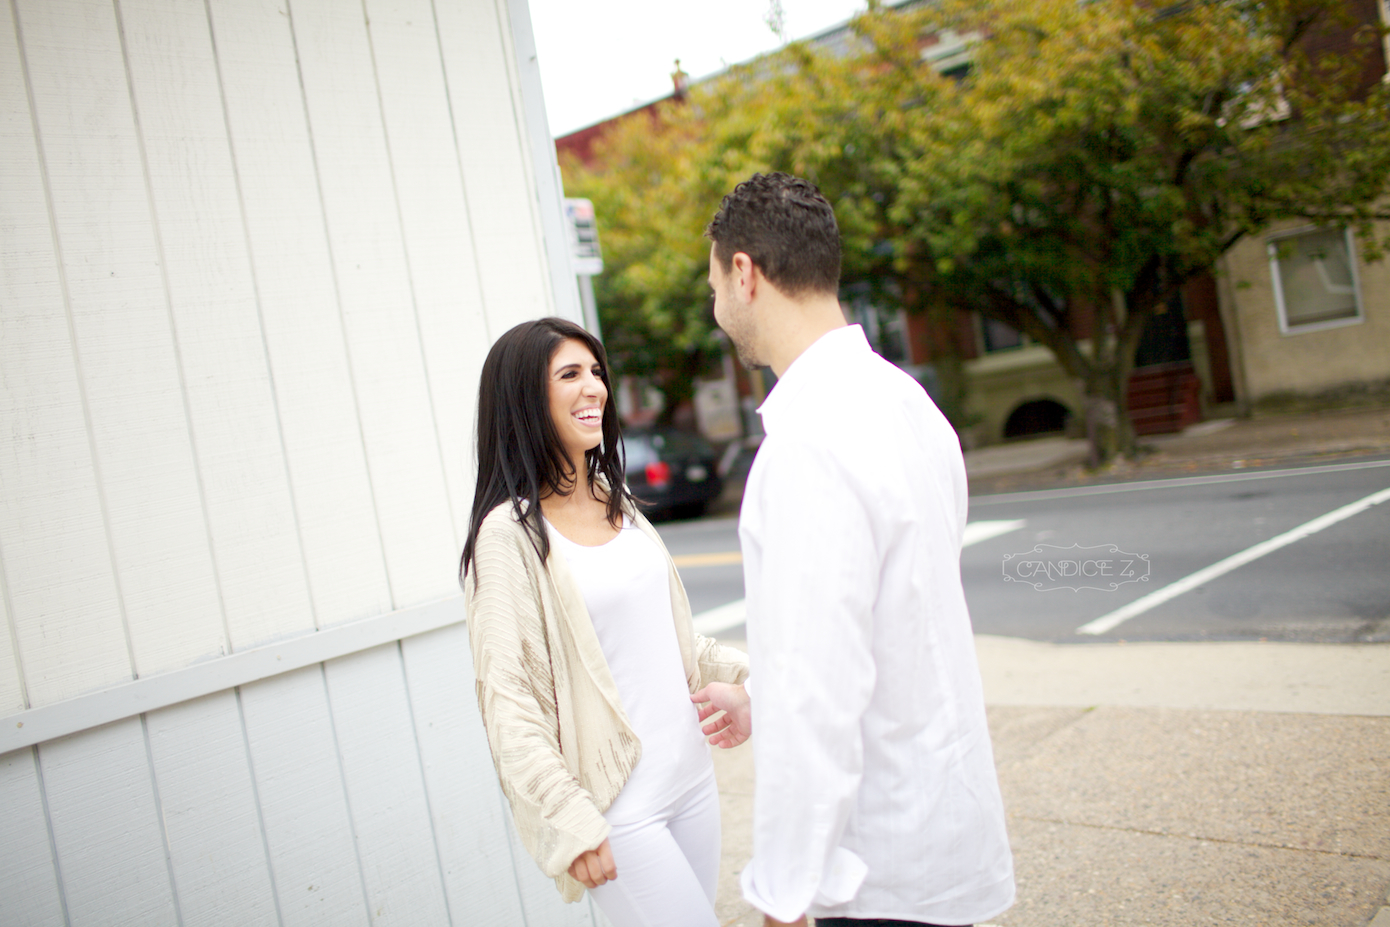 Philly_Engagement_Photographer.jpg